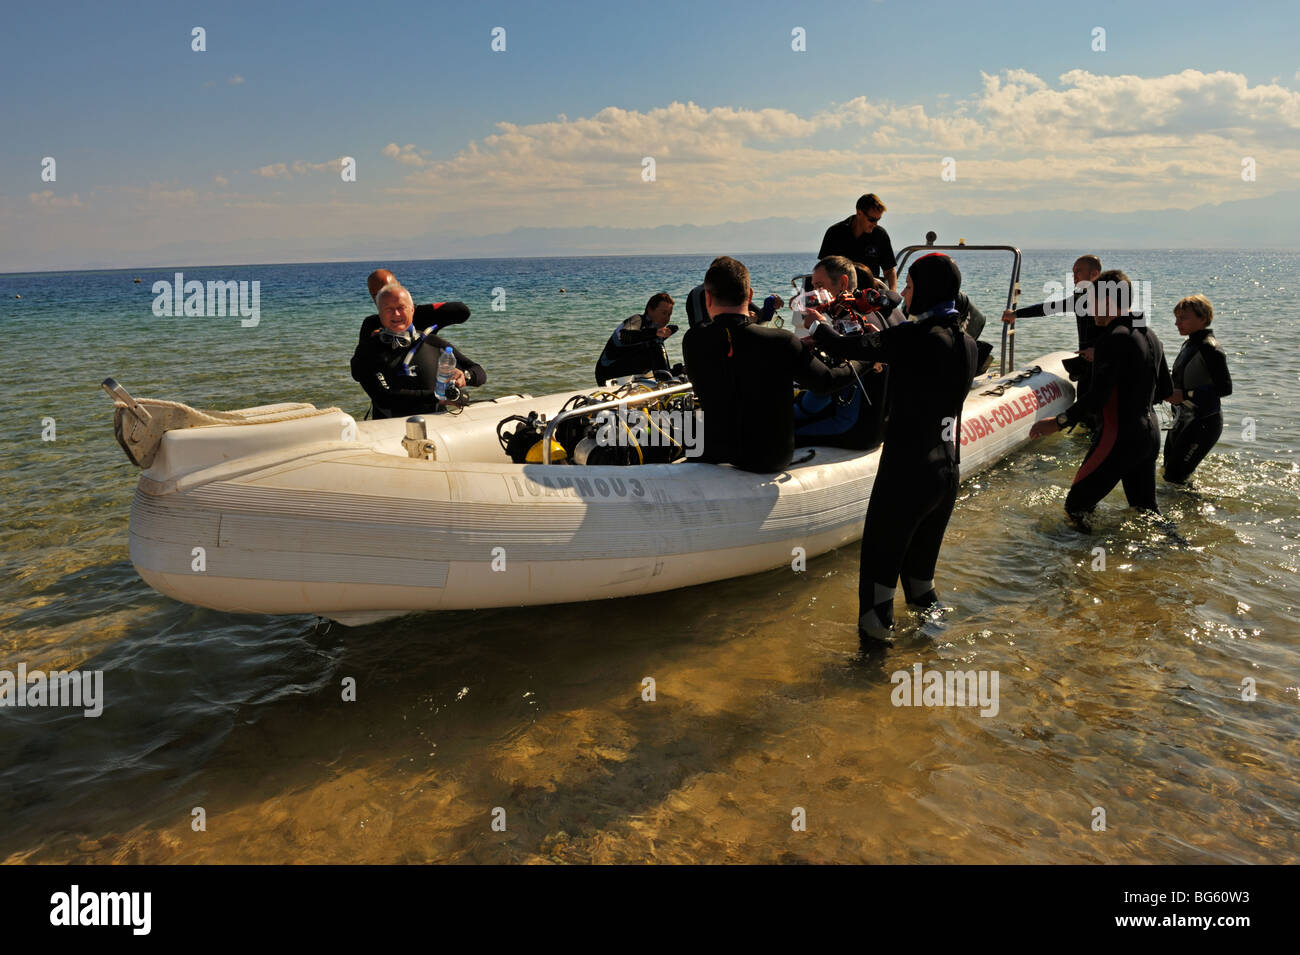 Scuba divers getting into dive boat from shore, Nuweiba, 'Red Sea', Sinai, Egypt - Stock Image